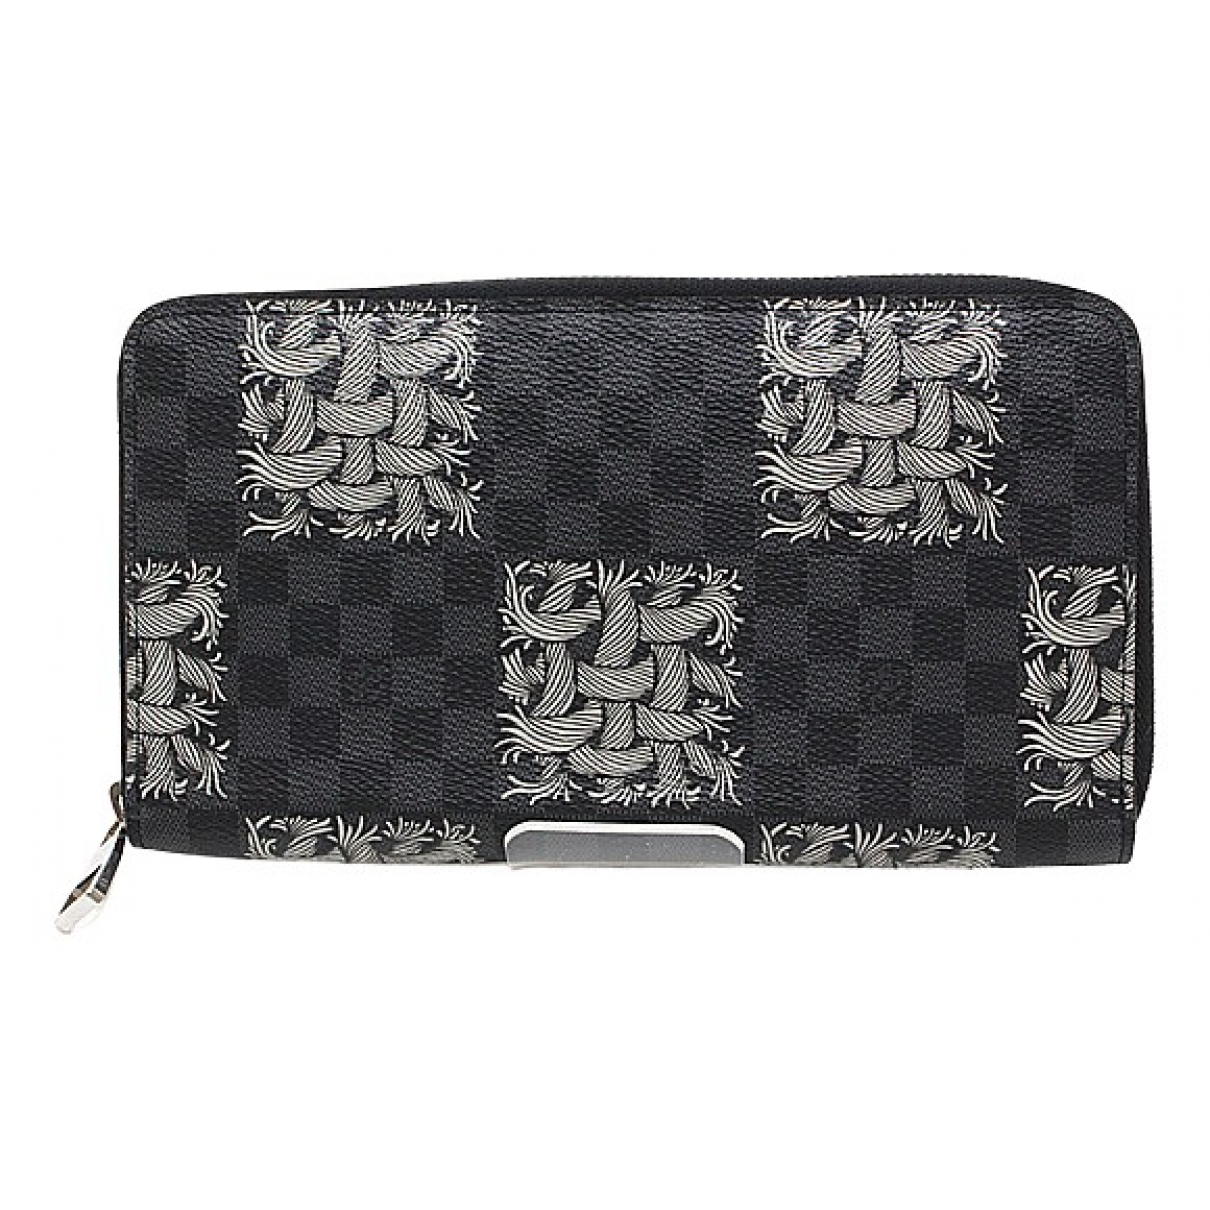 Louis Vuitton N Black Cloth Small bag, wallet & cases for Men N